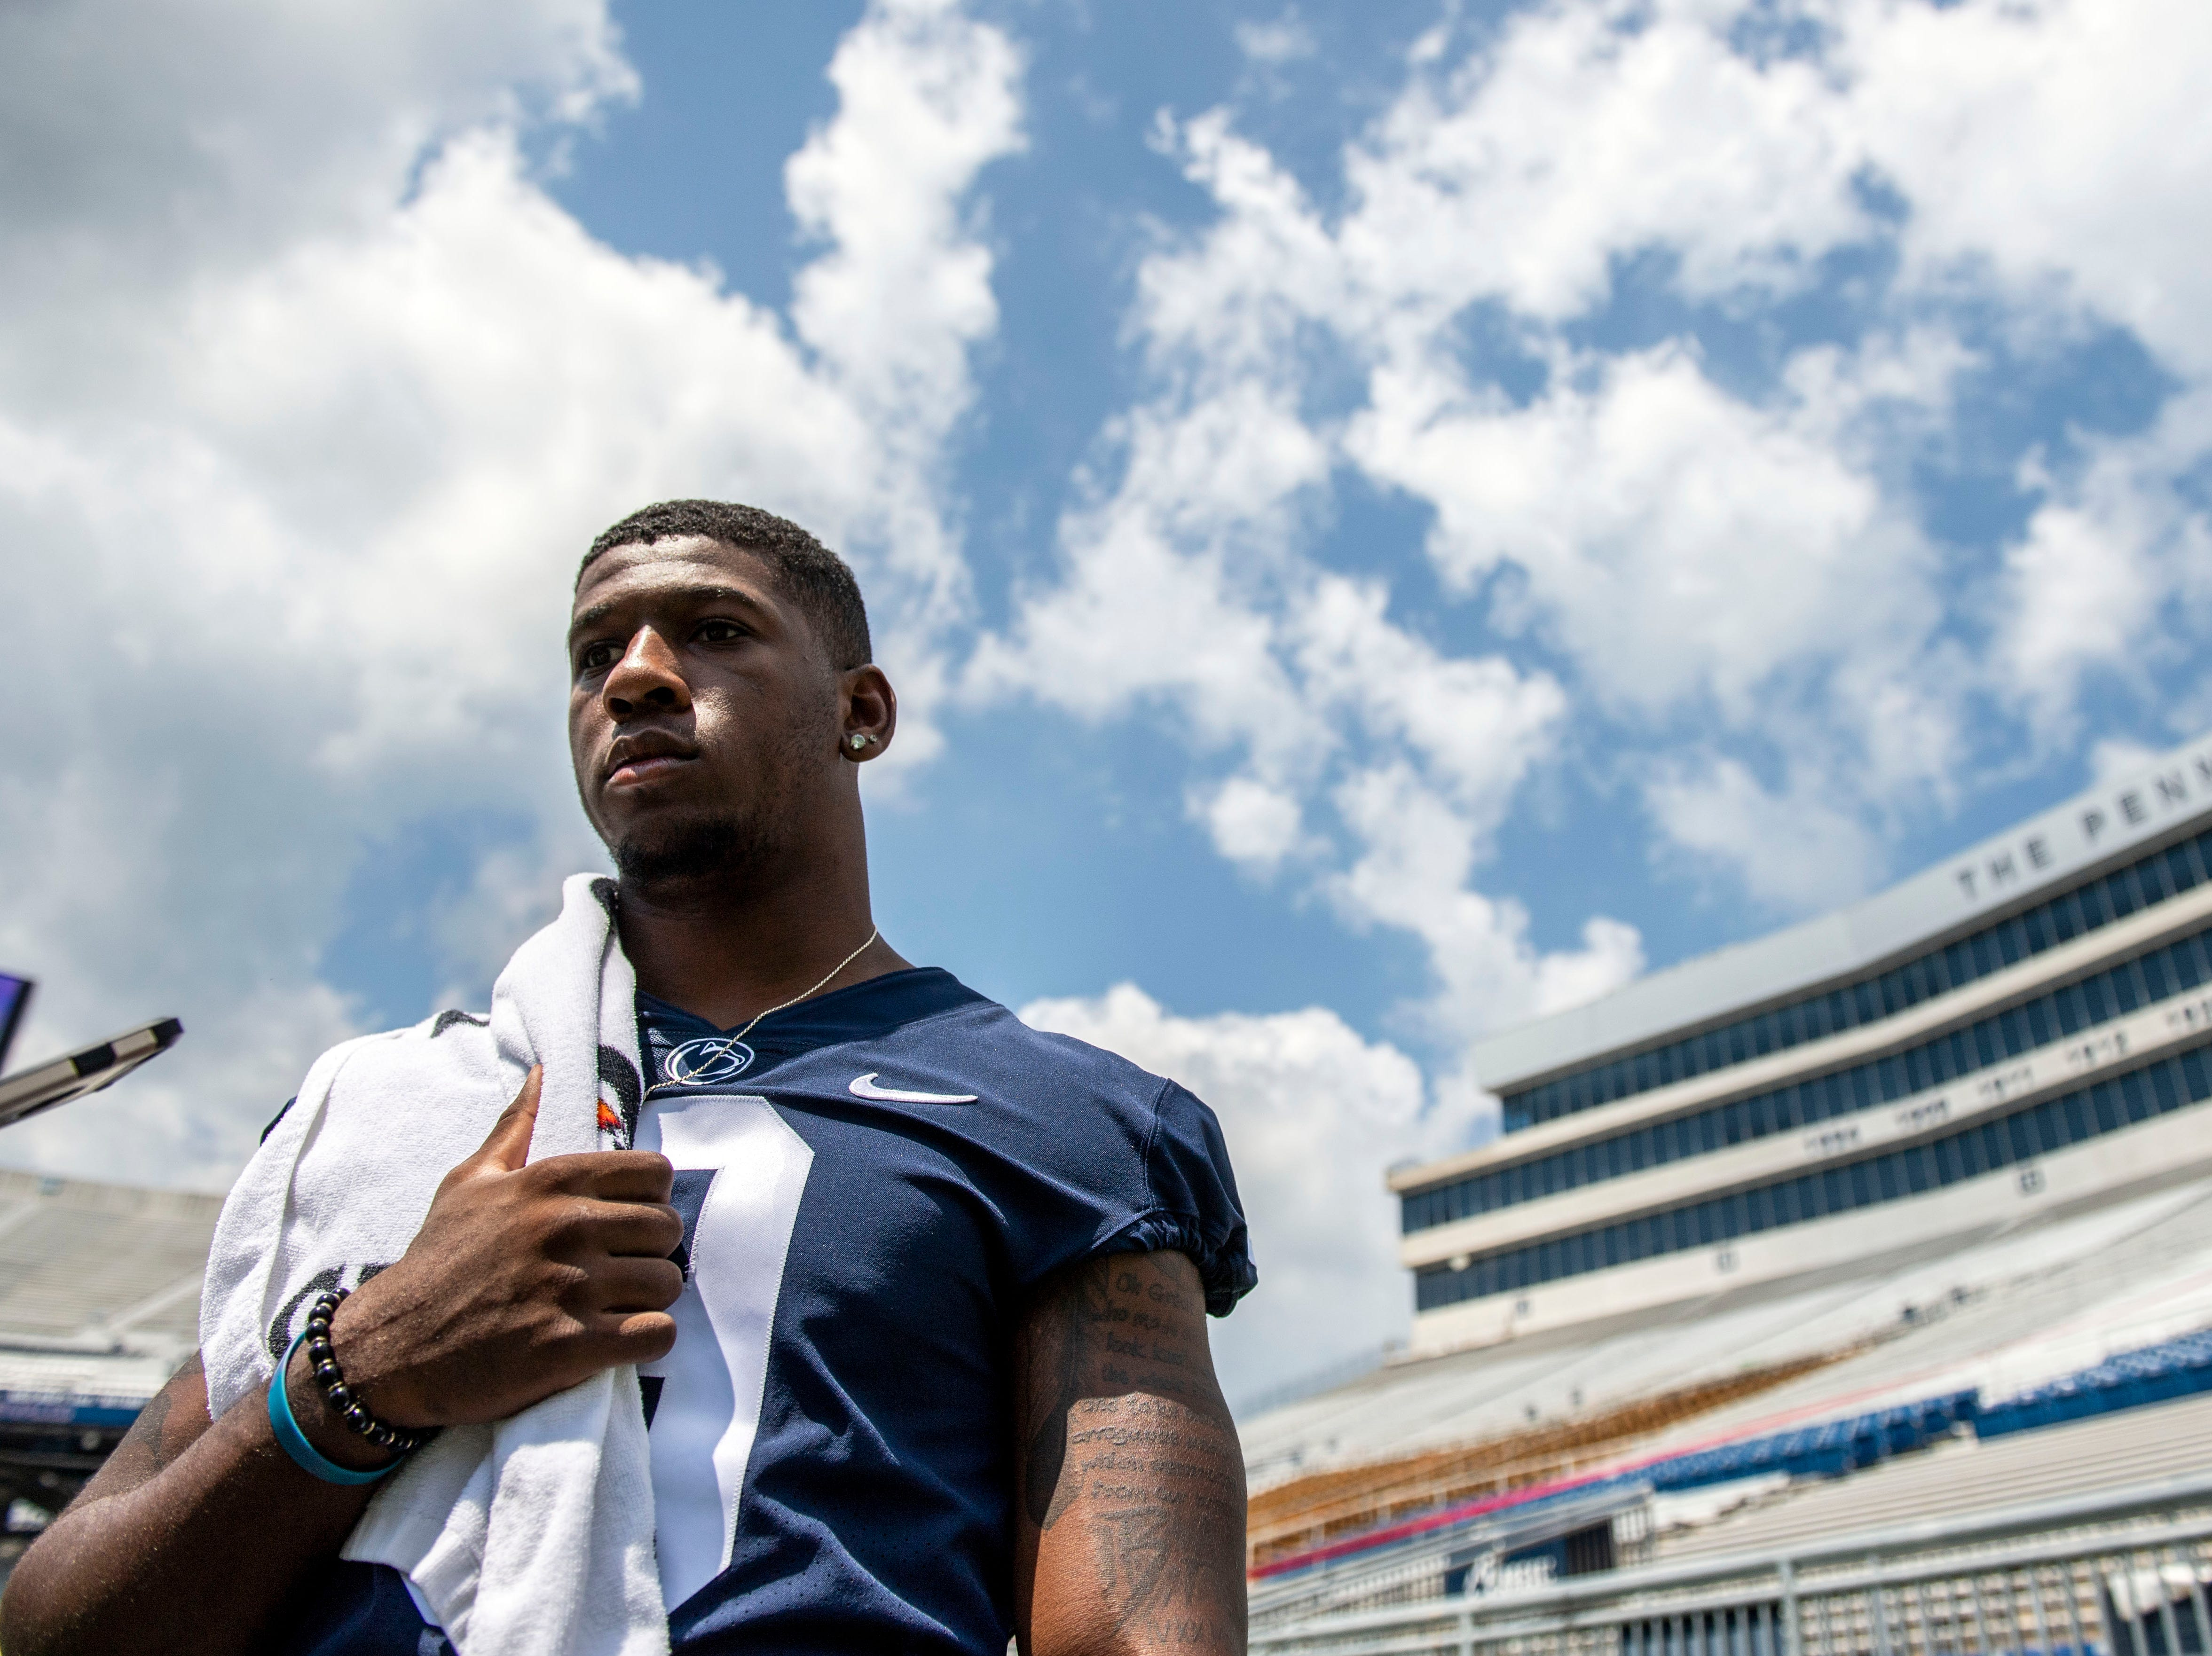 Penn State linebacker Jarvis Miller speaks with reporters on the field during media day at Beaver Stadium on Saturday, August 4, 2018.